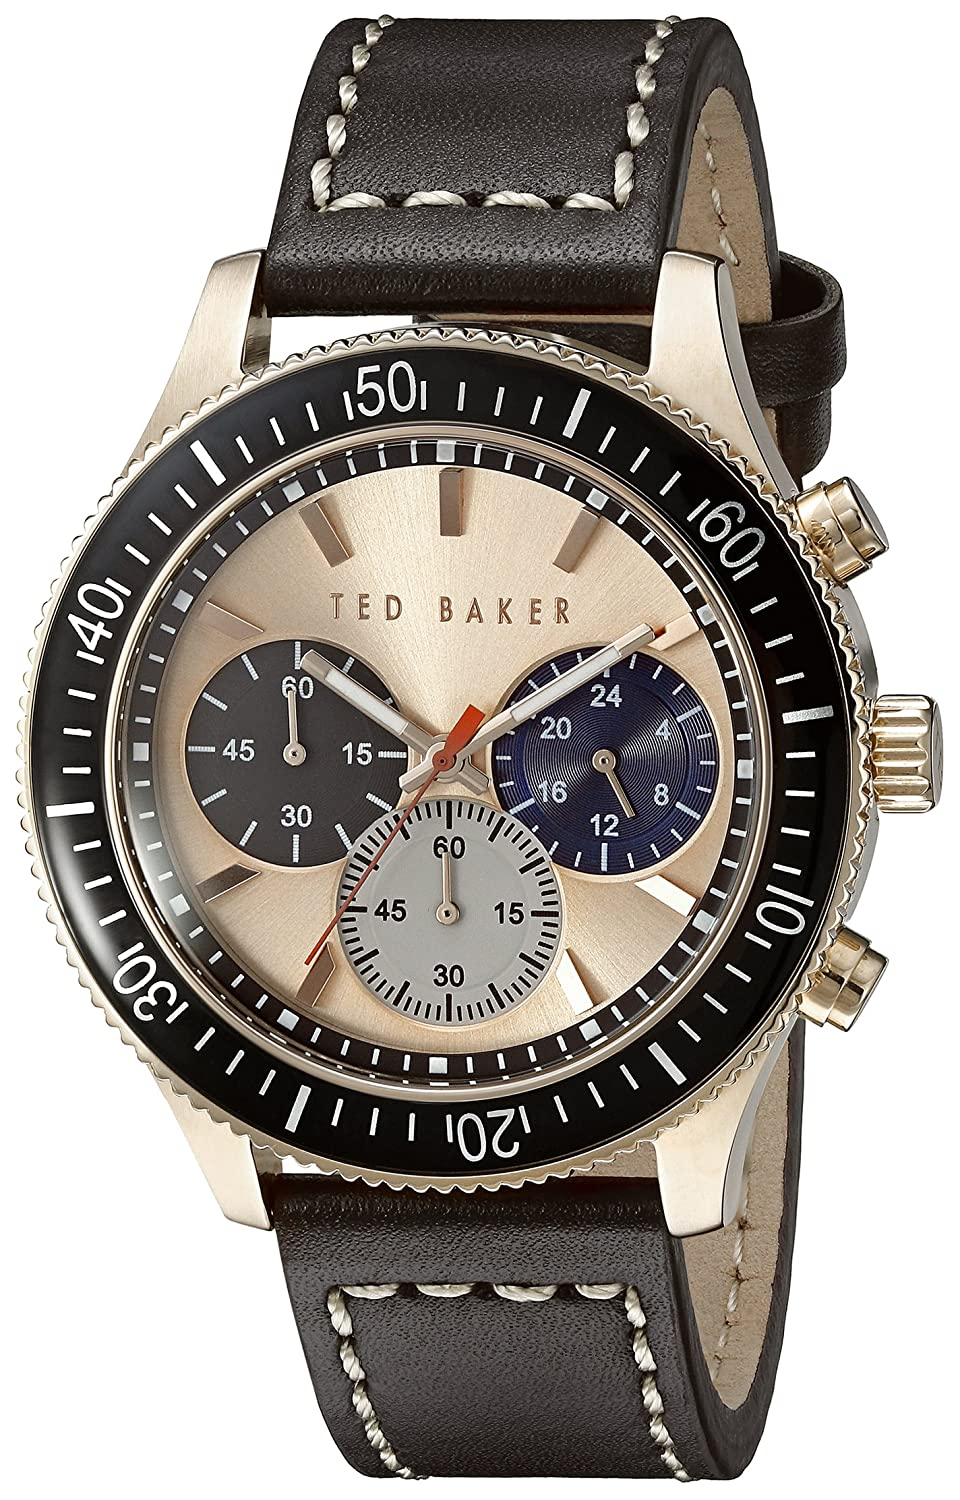 e95d0dd5011a0d Amazon.com  Ted Baker Men s TE1125 Rose Gold-Tone Stainless Steel Watch  with Brown Leather Band  Watches